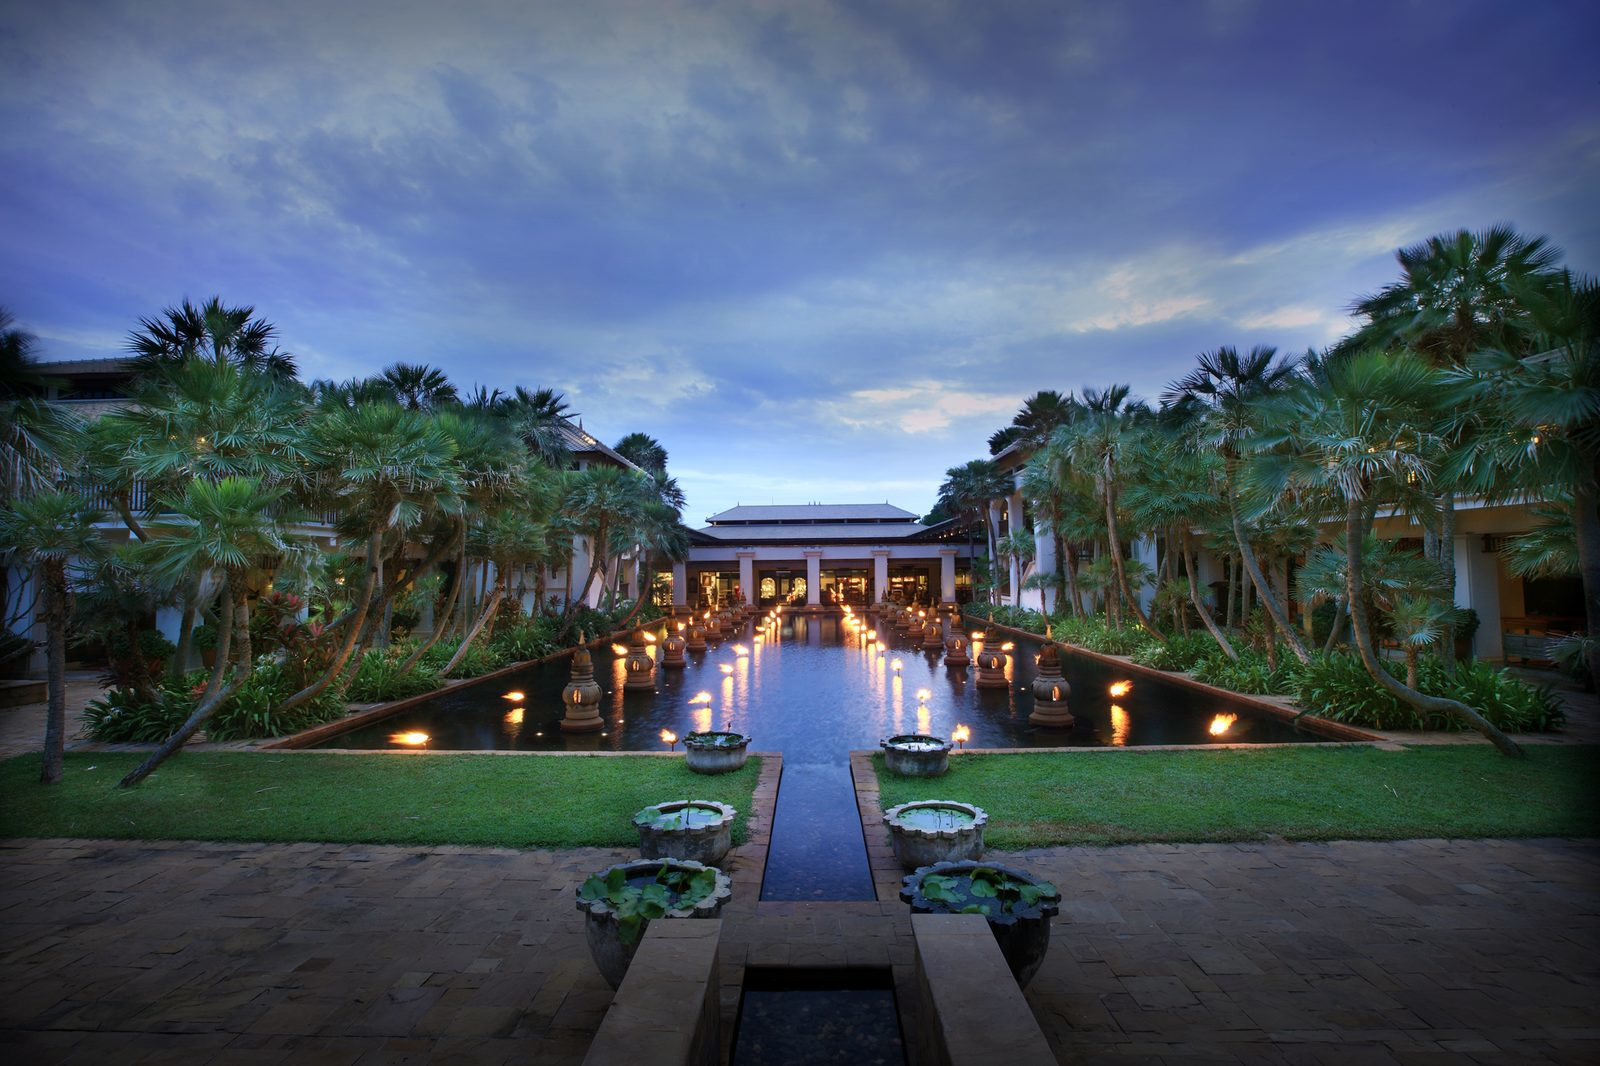 Marriott's Phuket Beach Club, Thailand